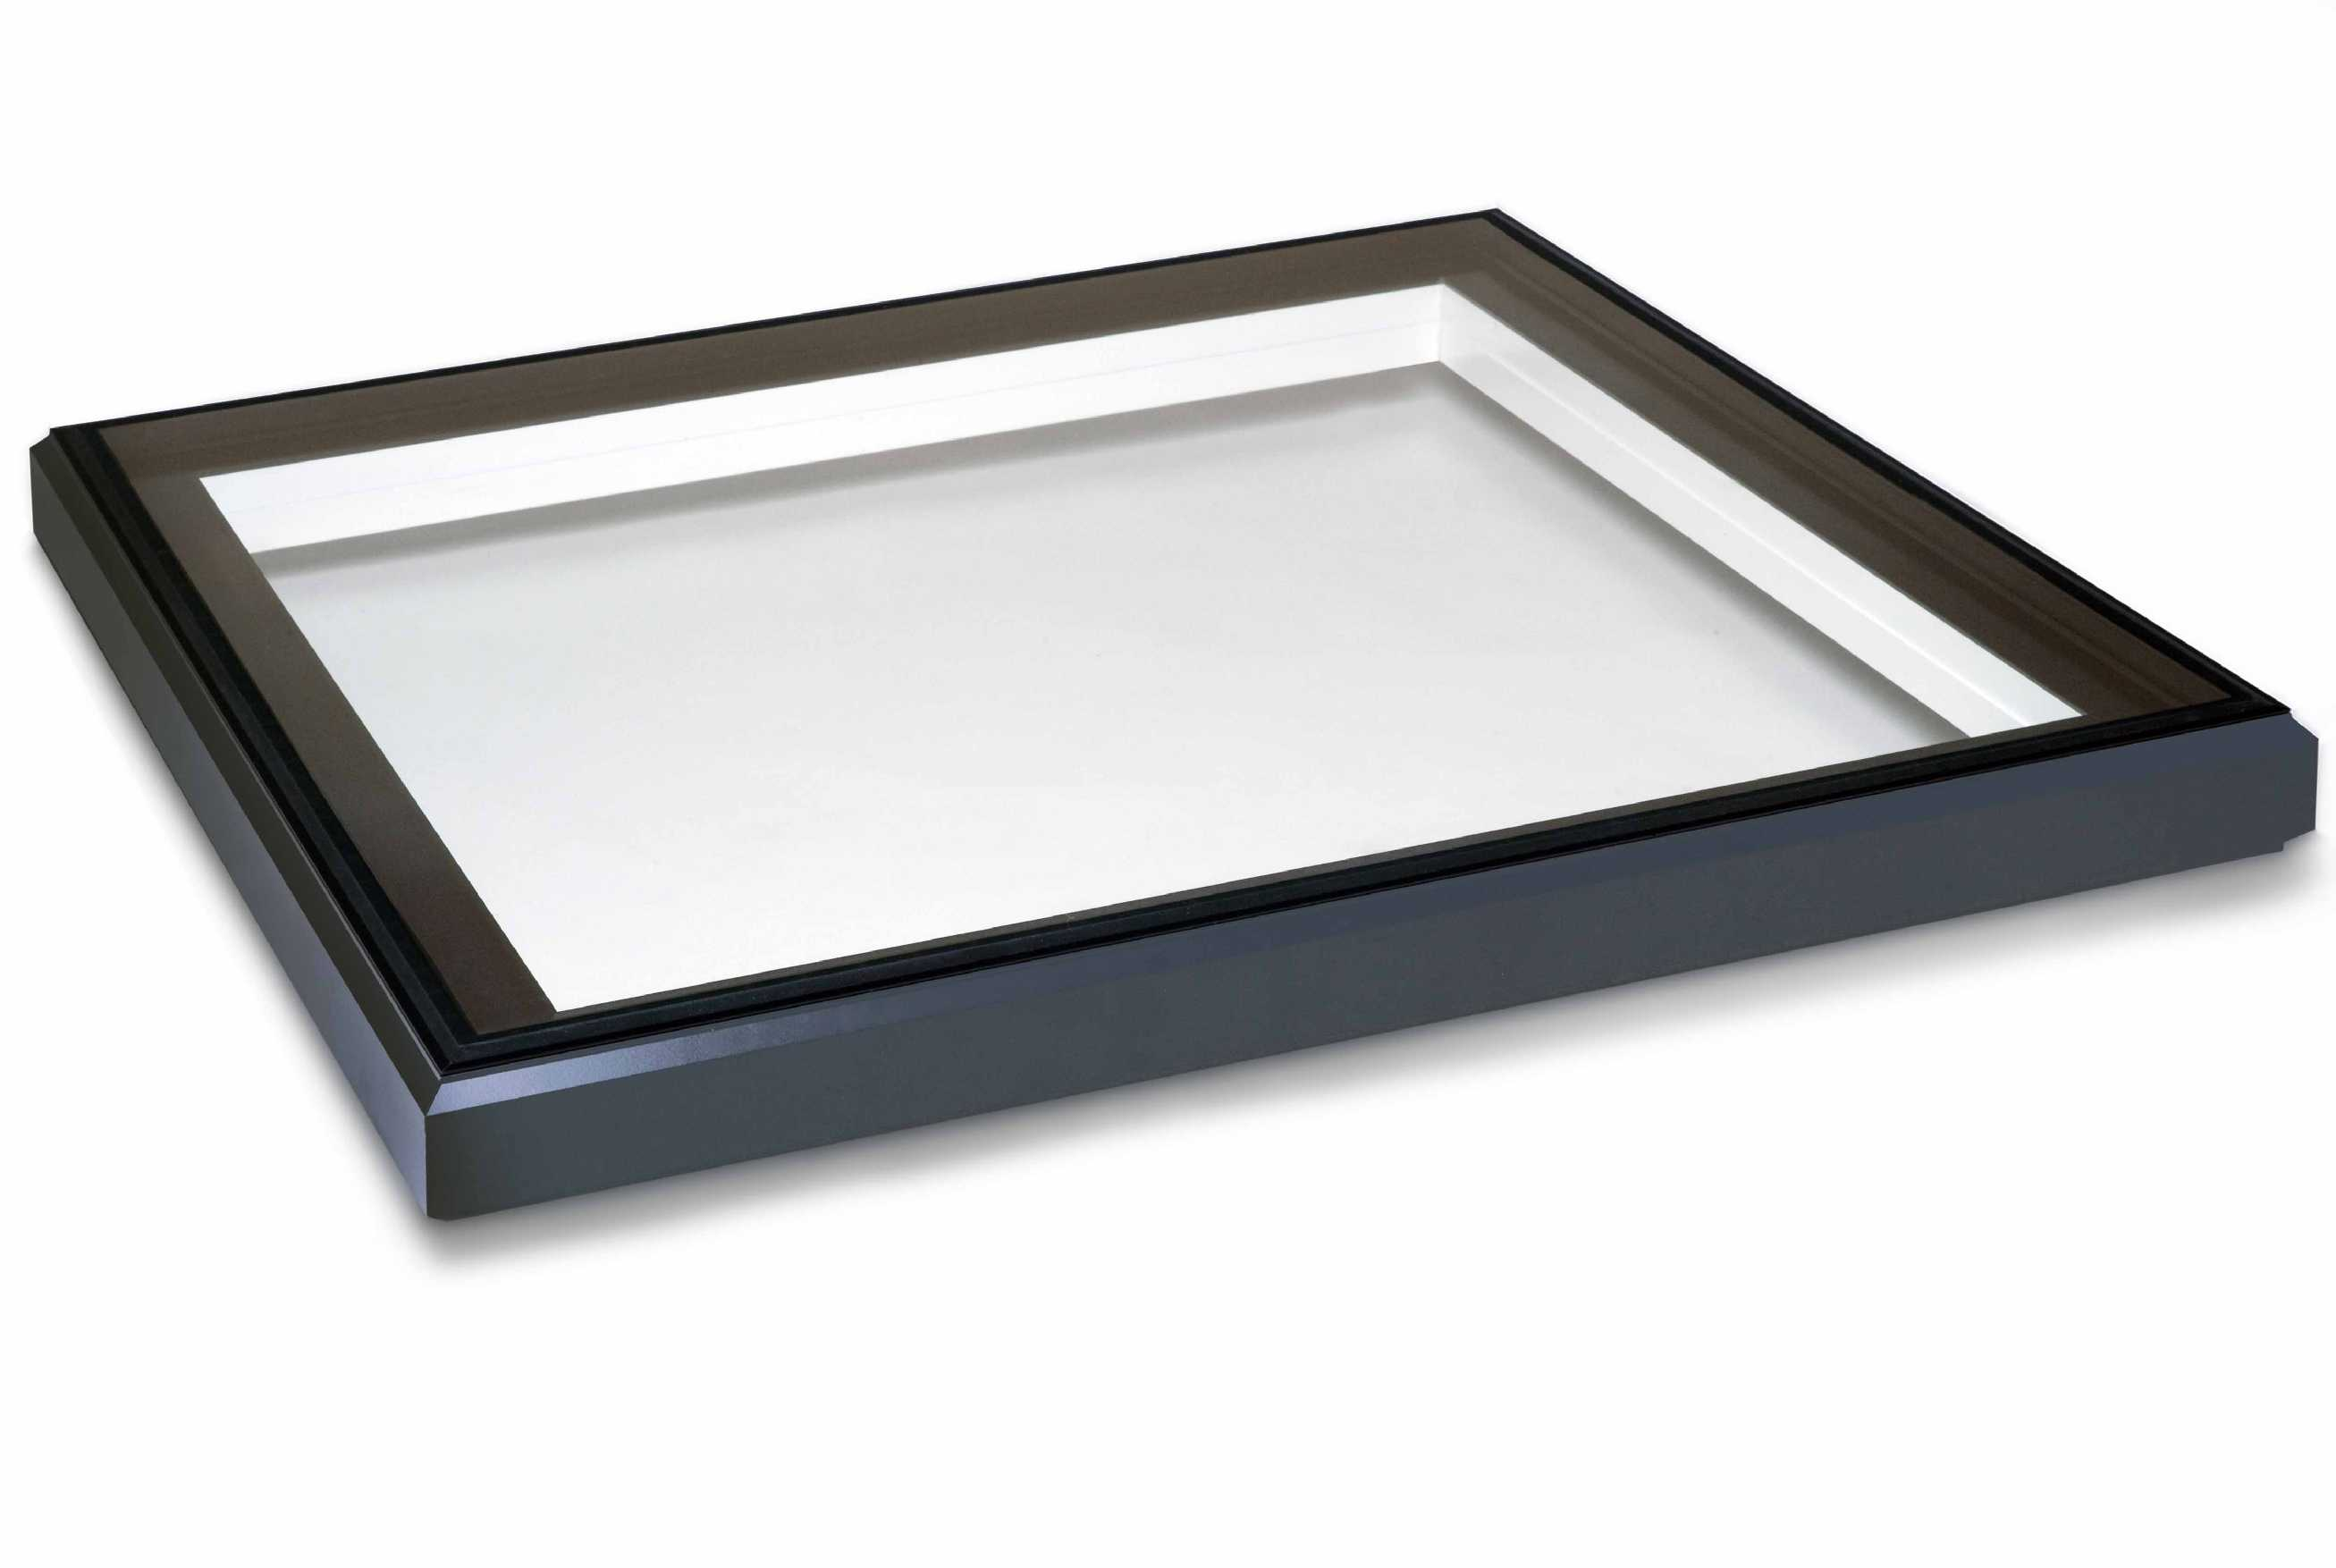 Buy EcoGard Flat Roof light, Double Glazed, Electric Opening, 1,000mm x 1,500mm online today